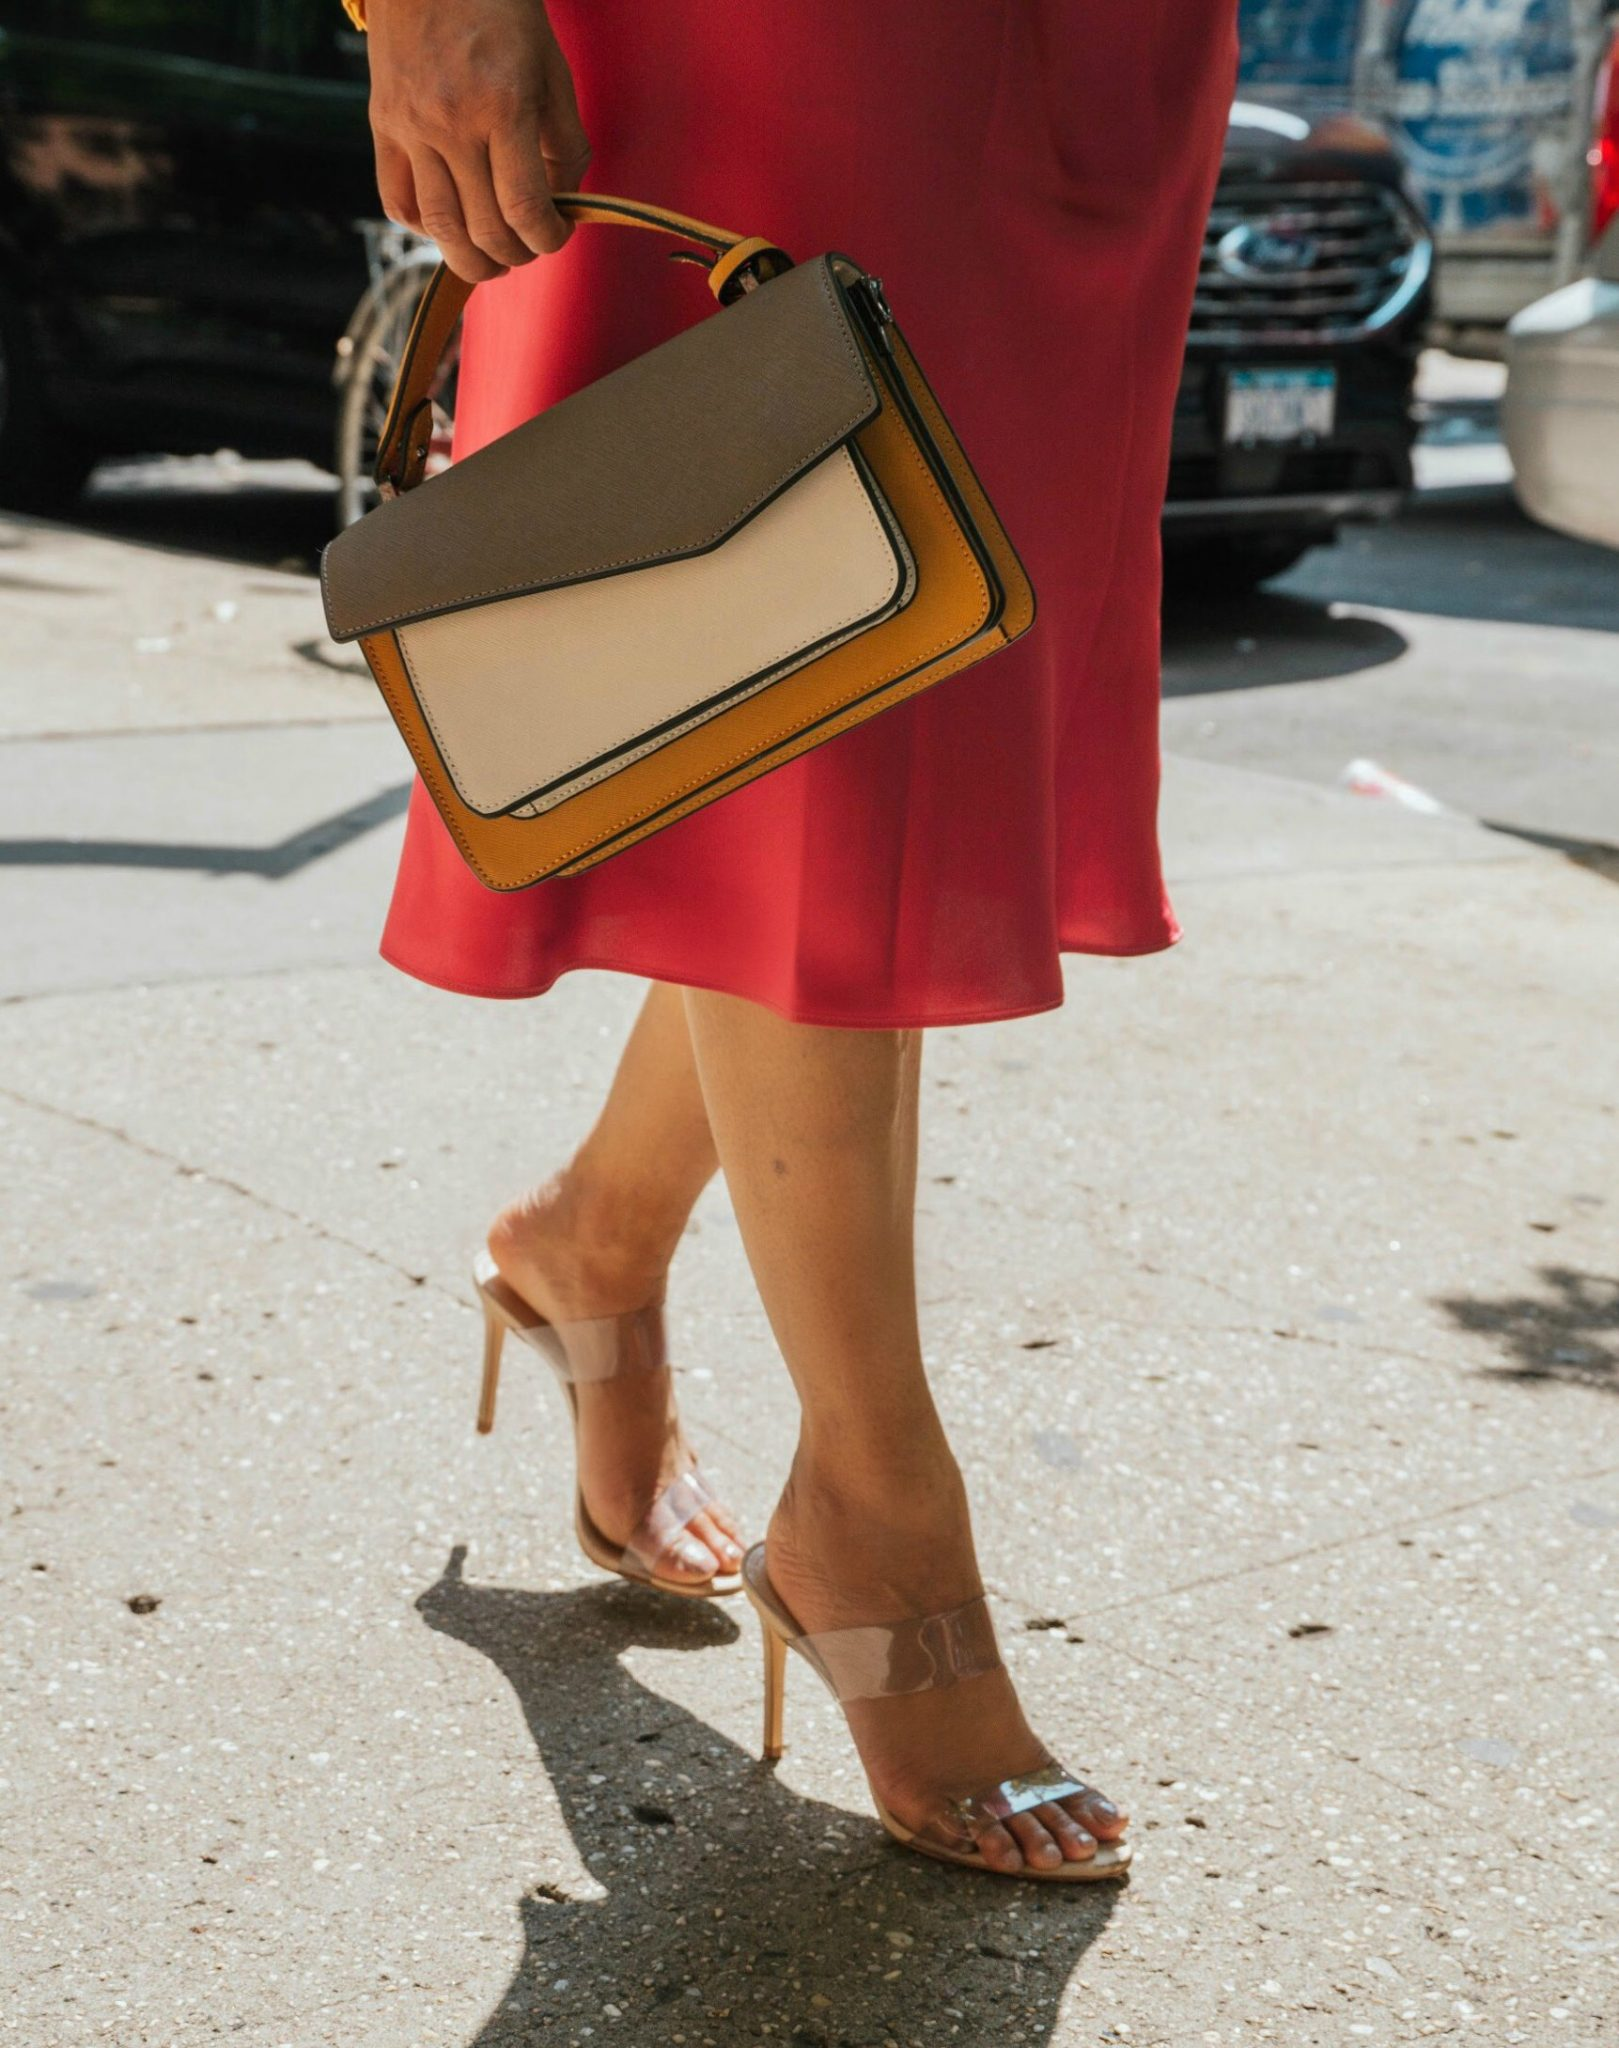 Wearing Schutz Ariella Clear Strap High-Heel Slide Sandals, Botkier Cobble Hill Color-Block Crossbody